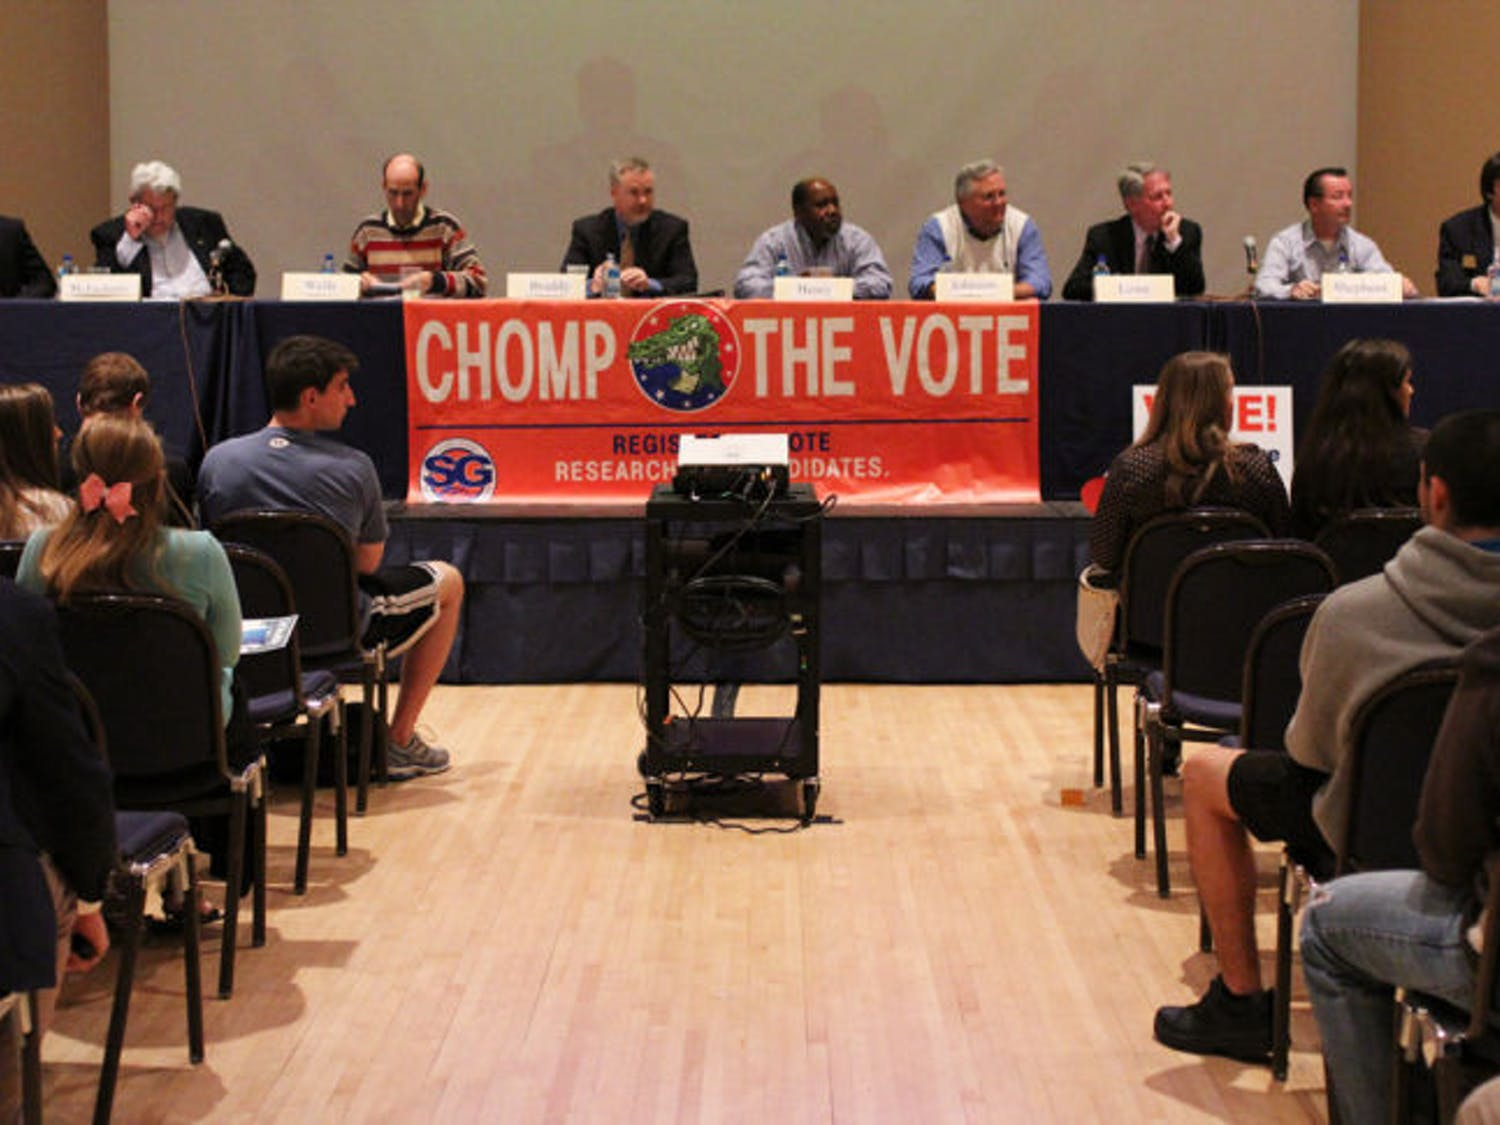 Mayor and City Commission candidates speak to students at the Chomp the Vote forum Wednesday evening at the Reitz Union.